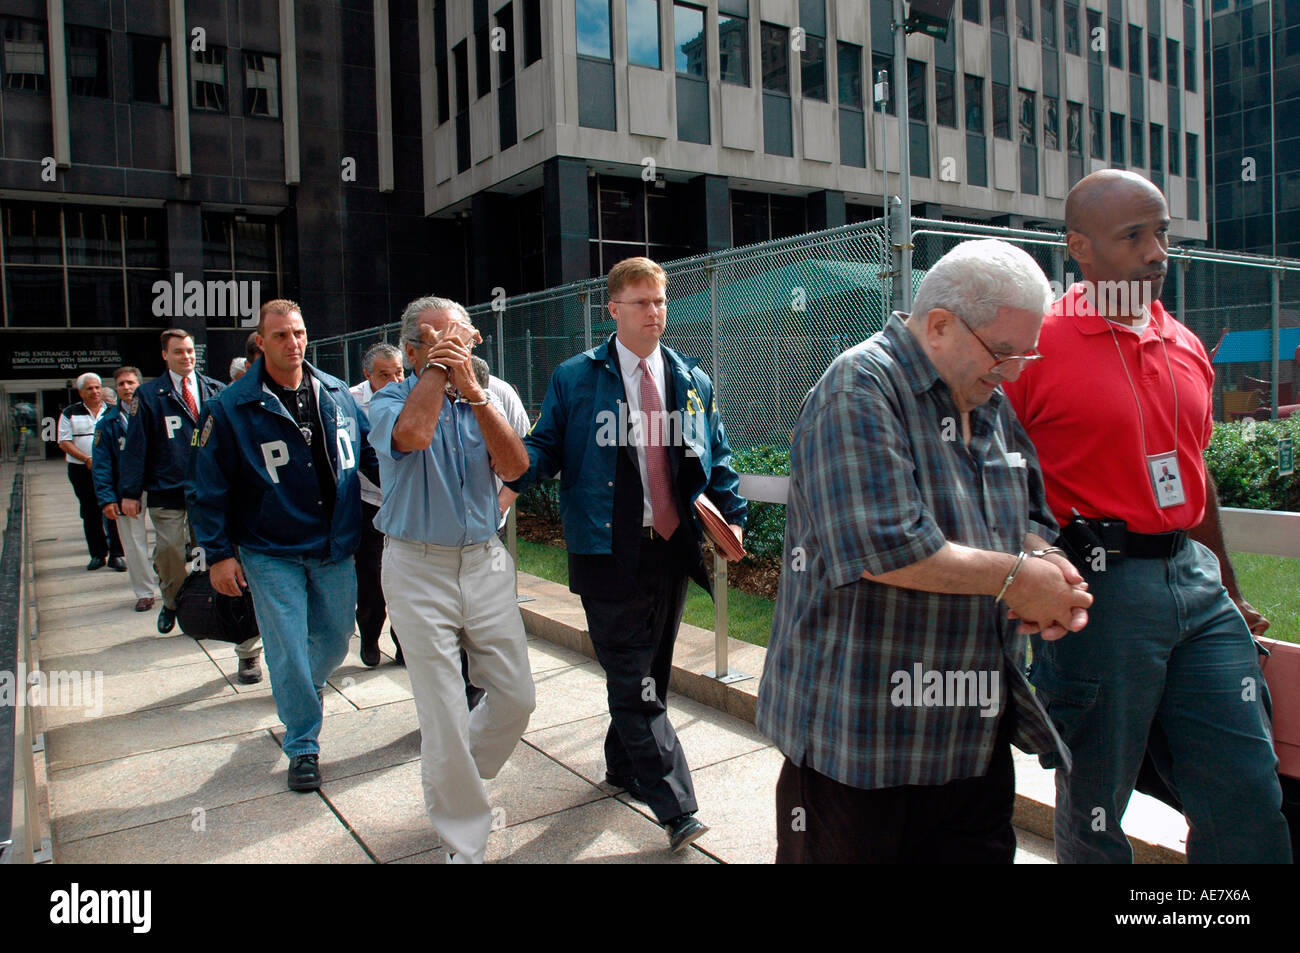 NYC Police Detectives and FBI agents escort some elderly and middle aged alleged mobsters out of the booking facility  - Stock Image